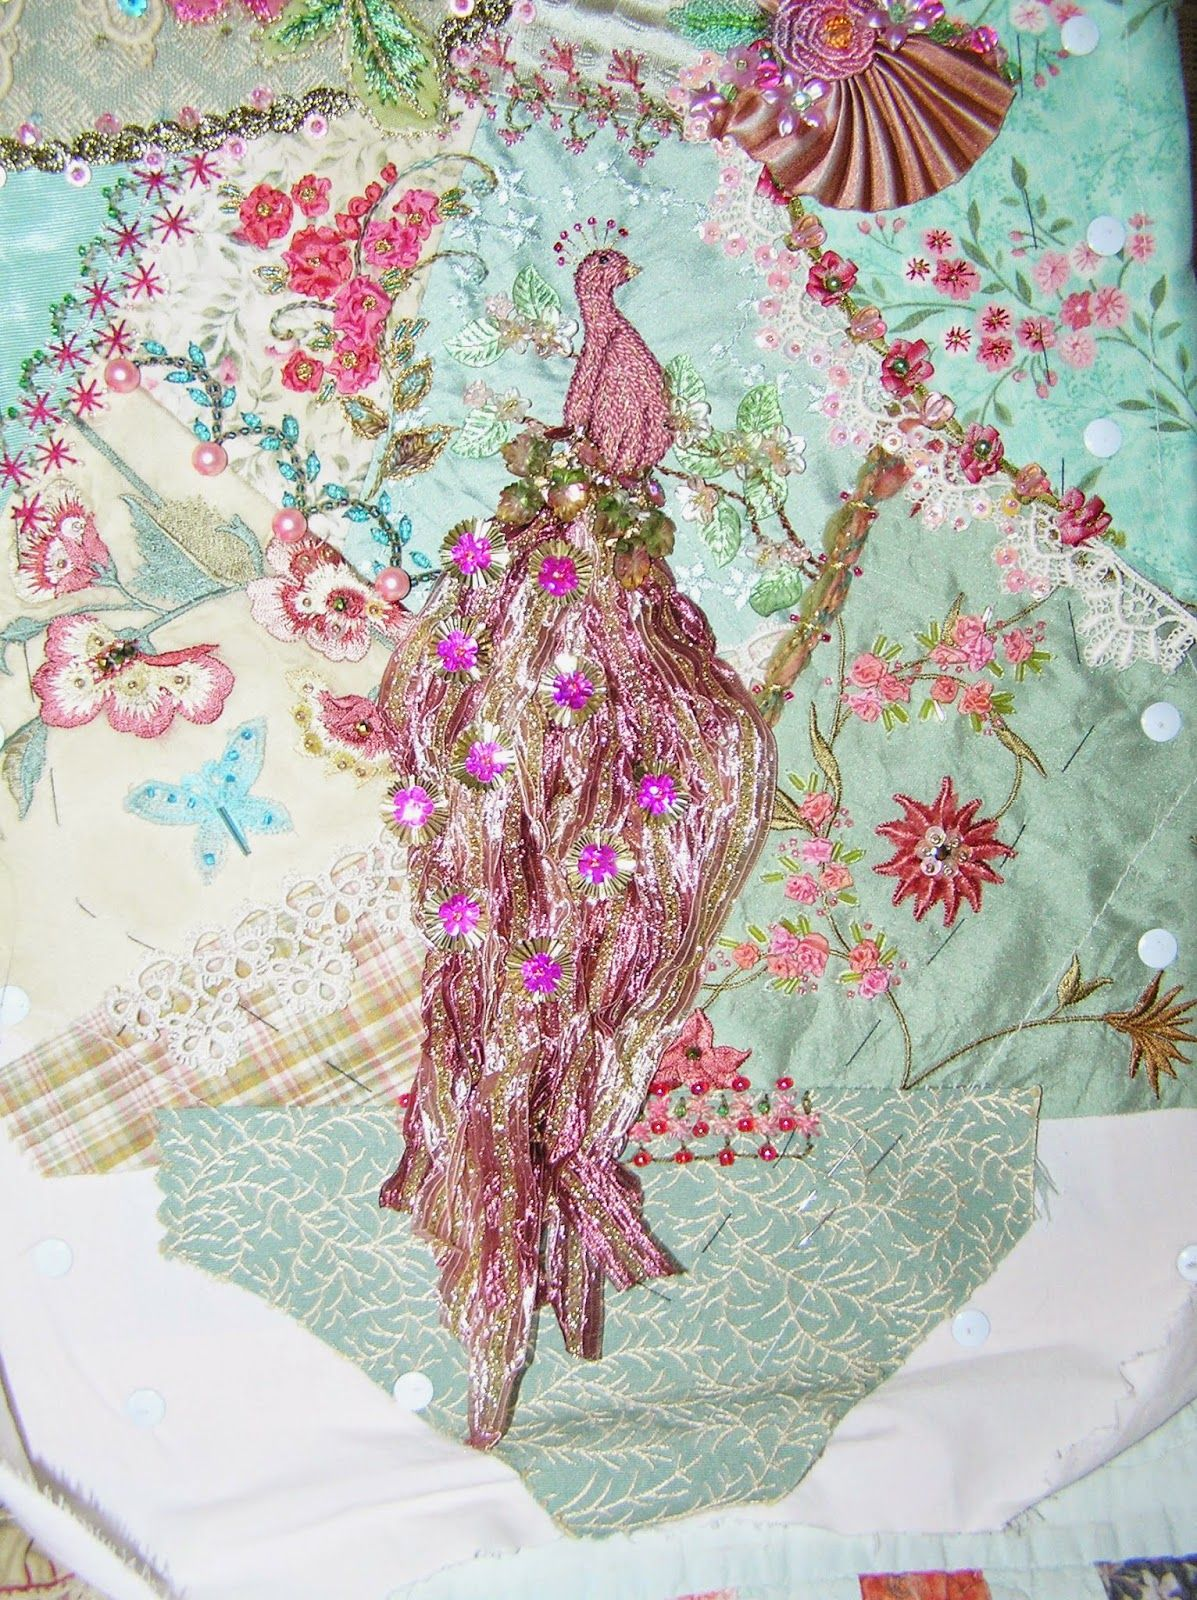 Crazy Quilting And Embroidery Blog By Pamela Kellogg Of Kitty And Me